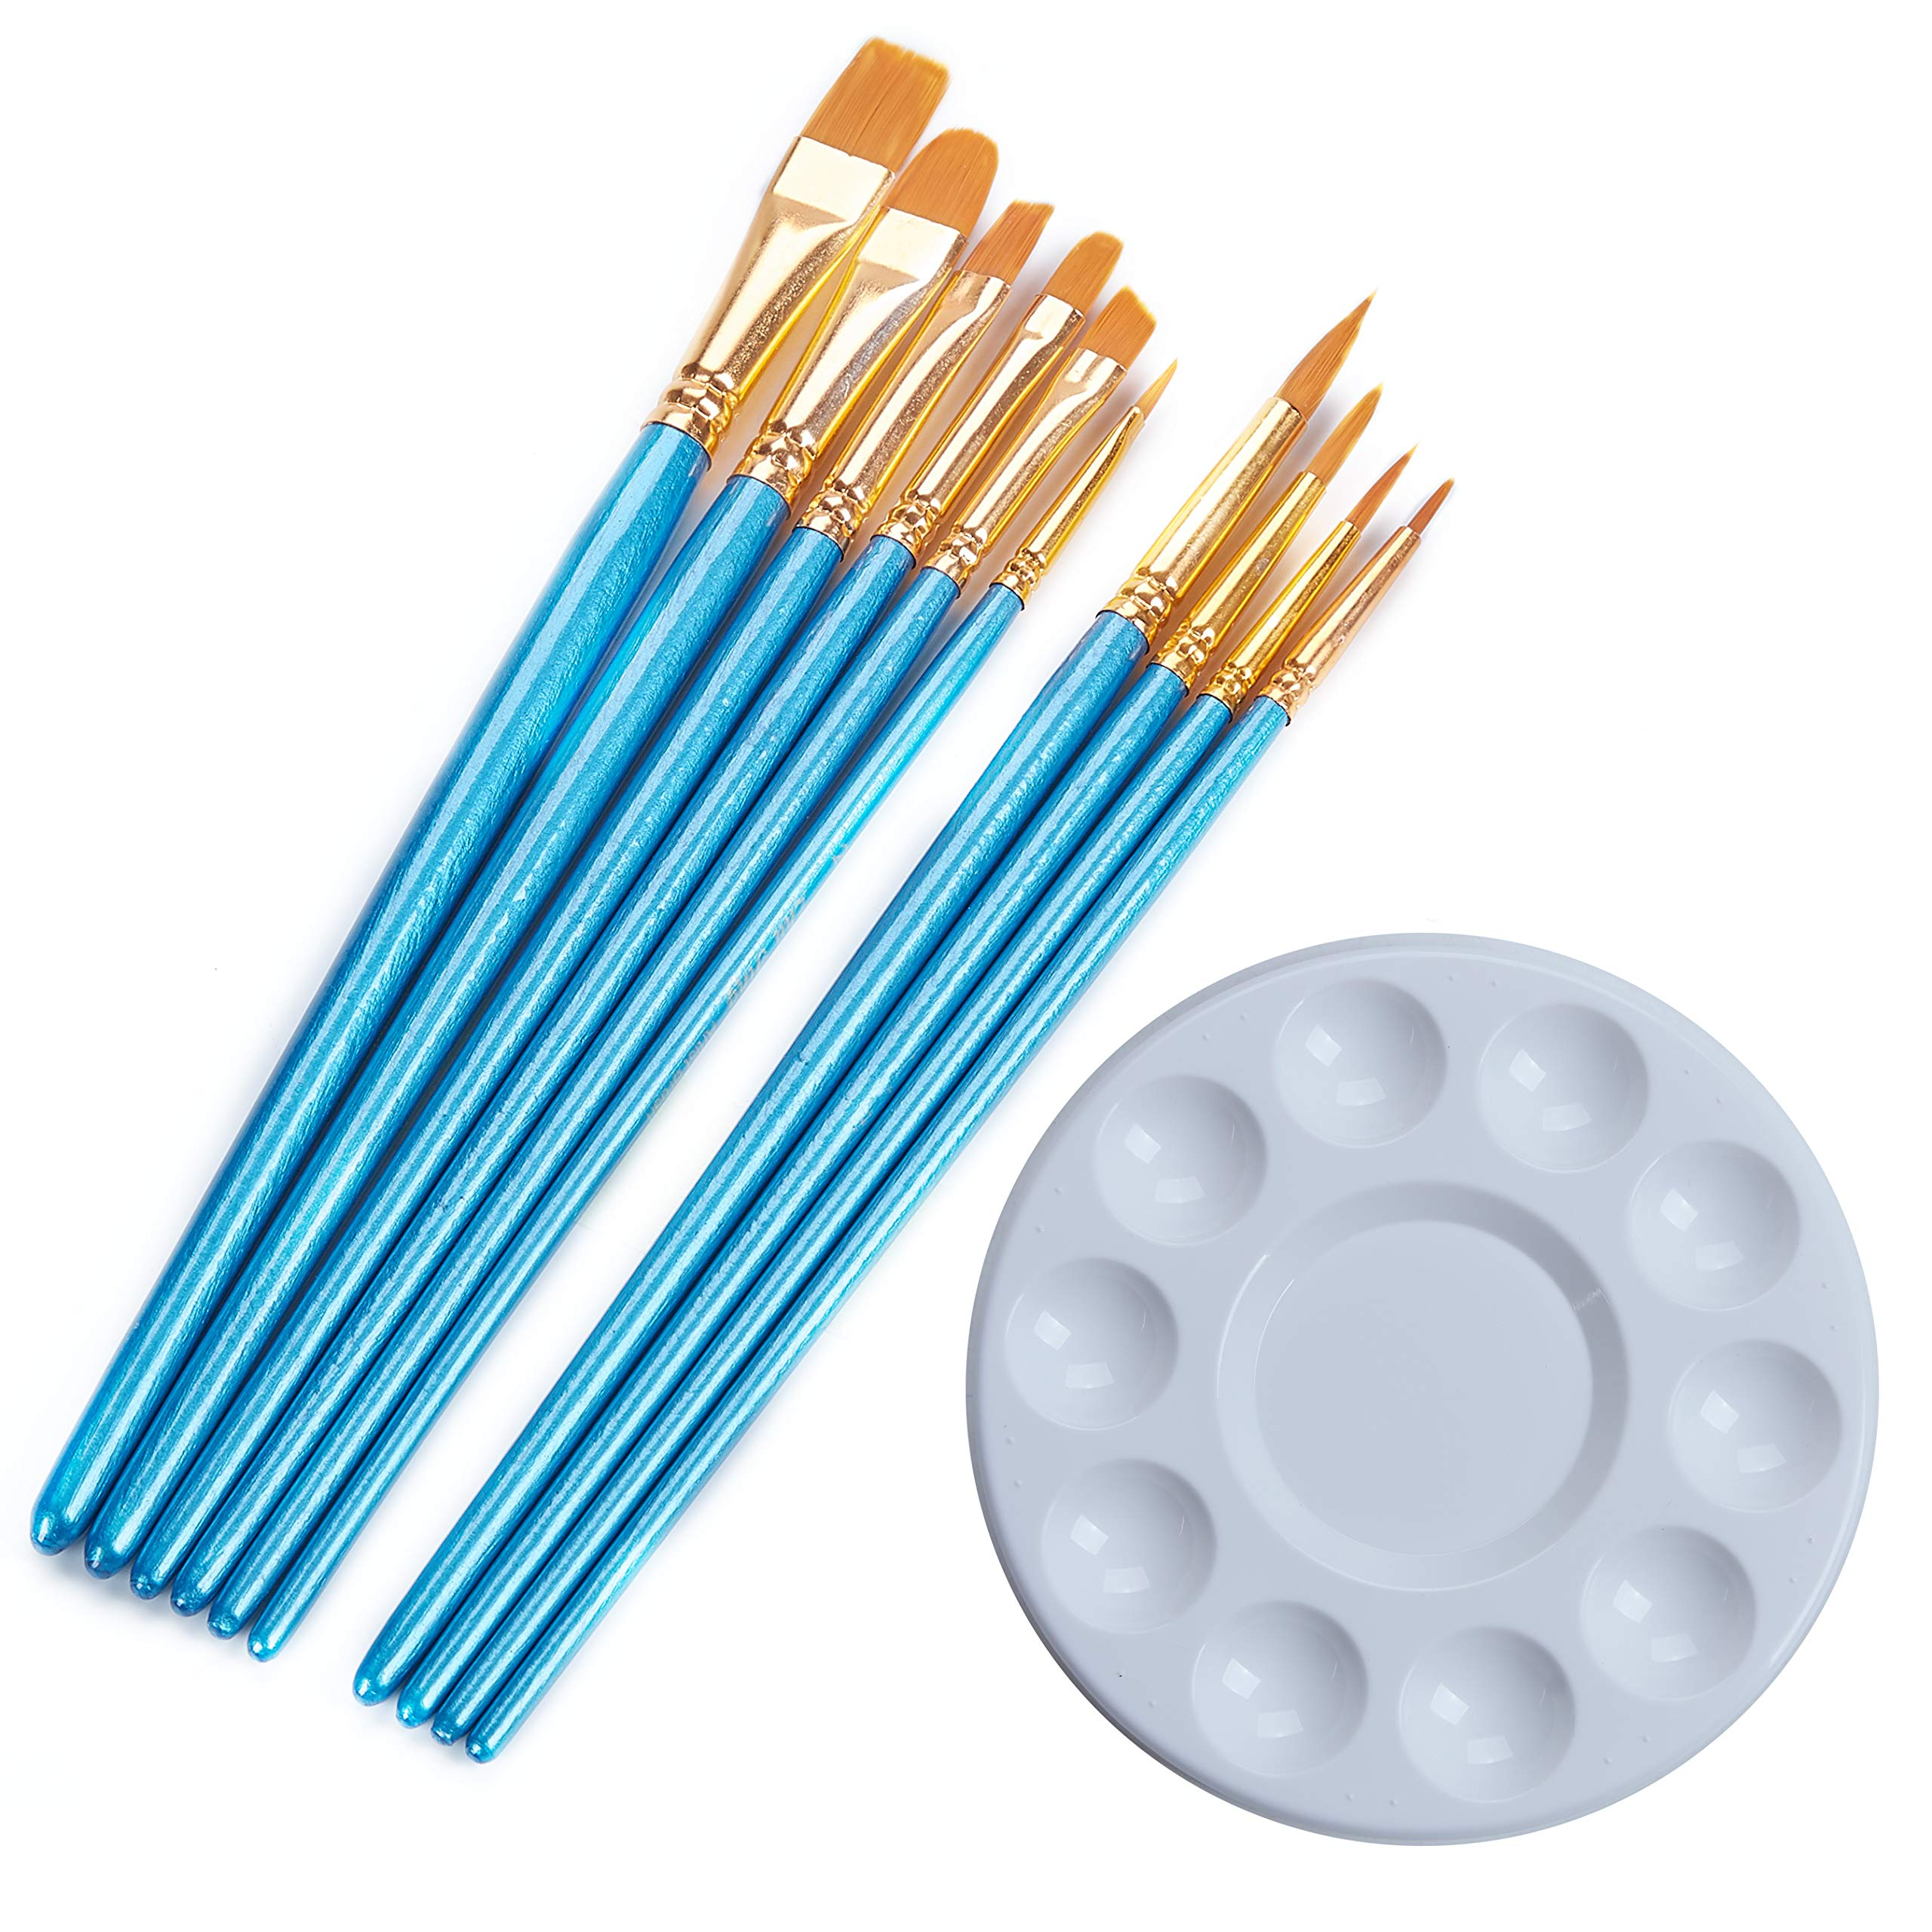 ECONIE Paint Brush Nylon Hair Brush Set,Pointed-Round Art Paintbrushes with Paint Trays Plastic Palette for All Purpose Oil Watercolor Painting Artist Professional Kits (1)